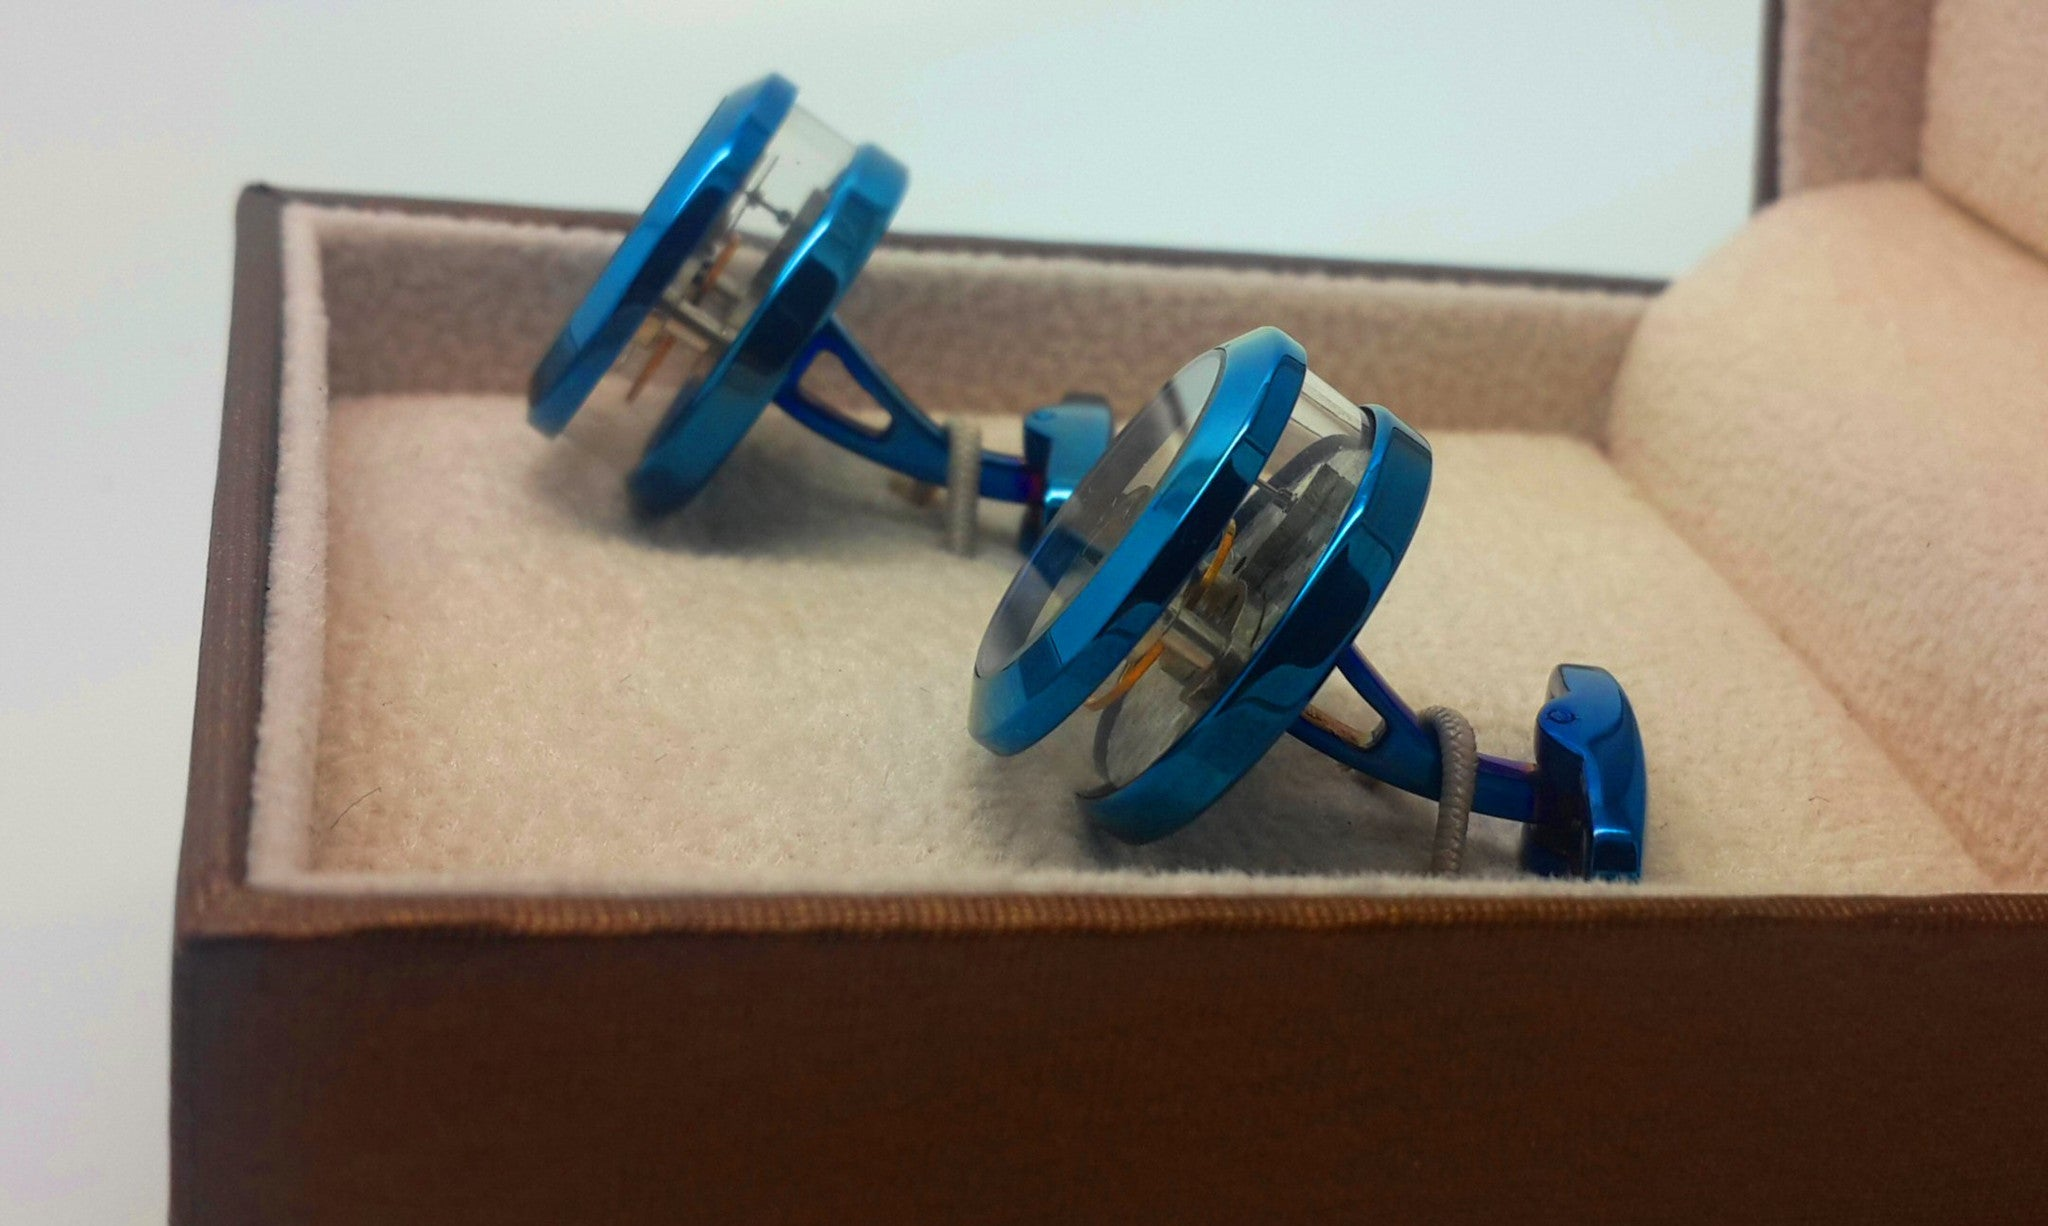 Tourbillon Clock Mechanism Cufflinks in blue with clear sides